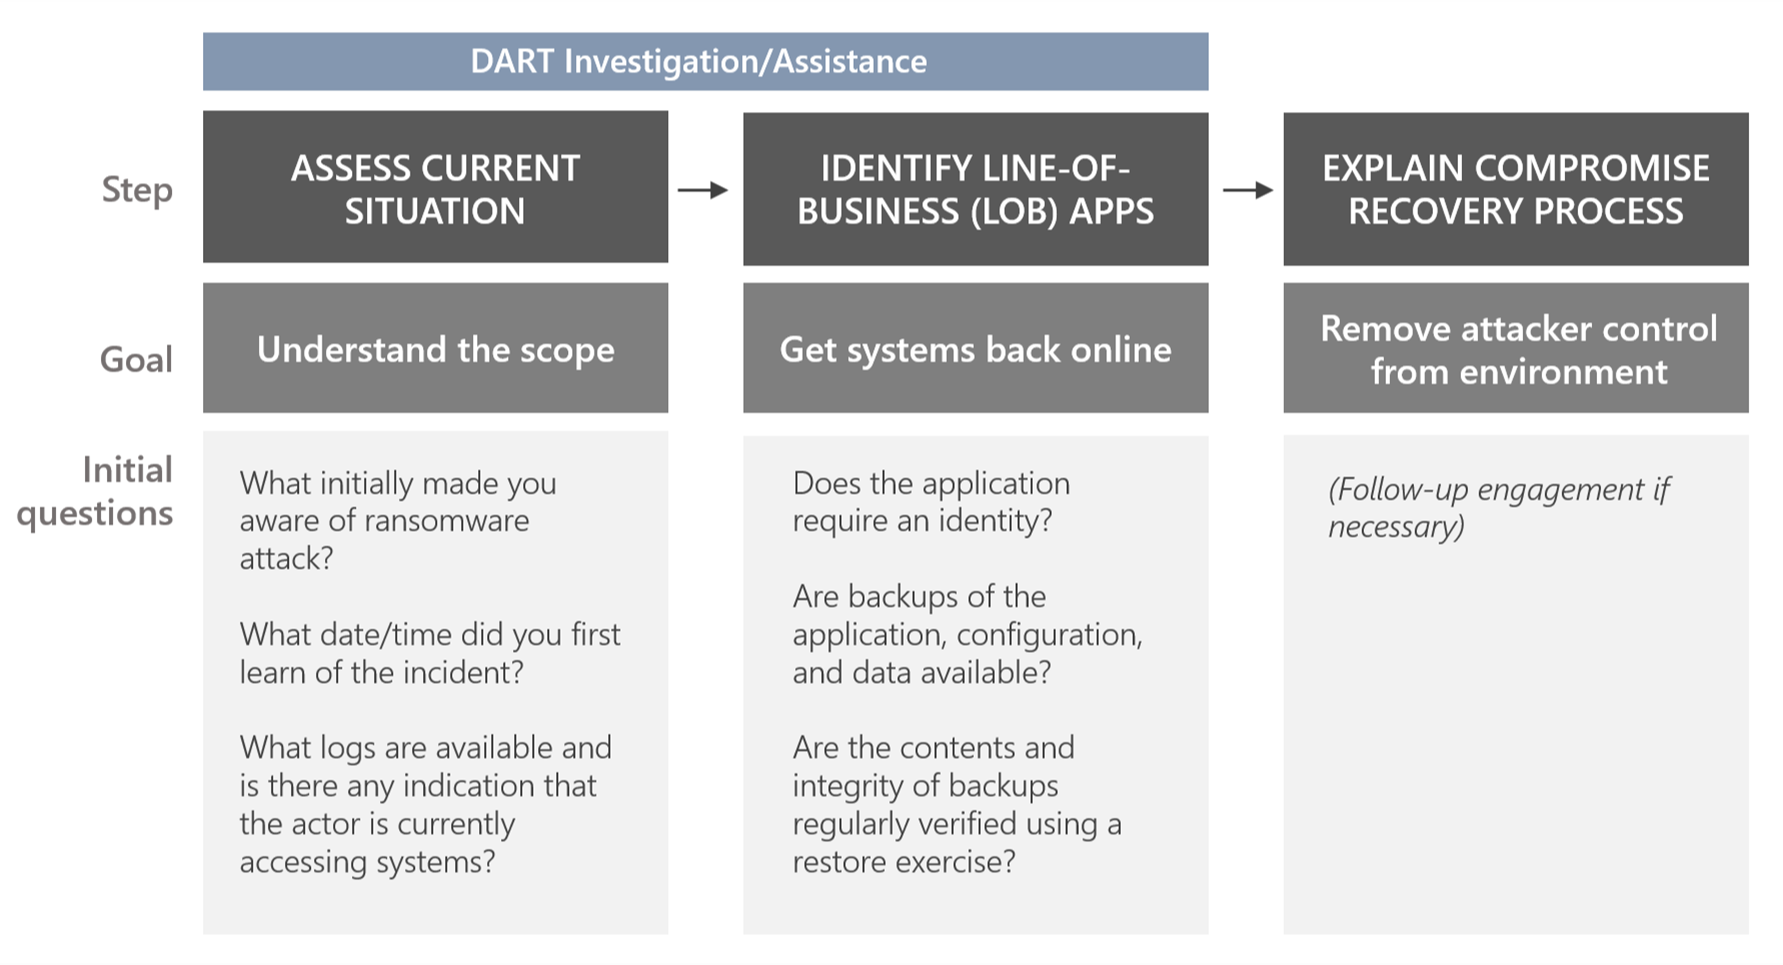 Graphic illustrates the steps, goals, and initial questions in DART's ransomware investigation assistance.